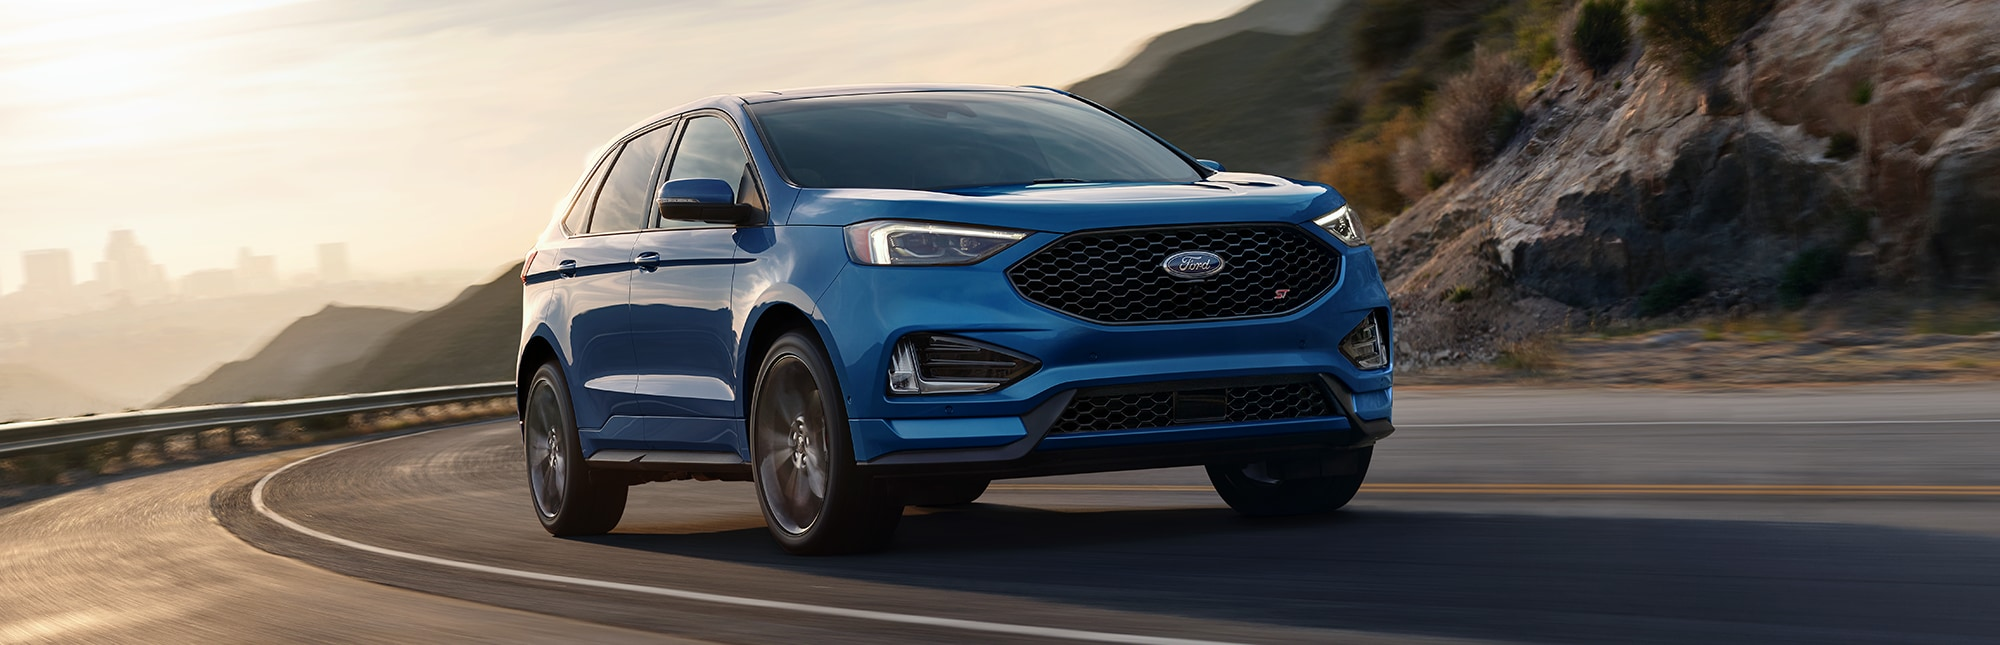 The Team At Jack Powell Ford Your Local Ford Dealership Is Thrilled By The Arrival Of The  Ford Edge This Vehicle Boasts A Wide Array Of